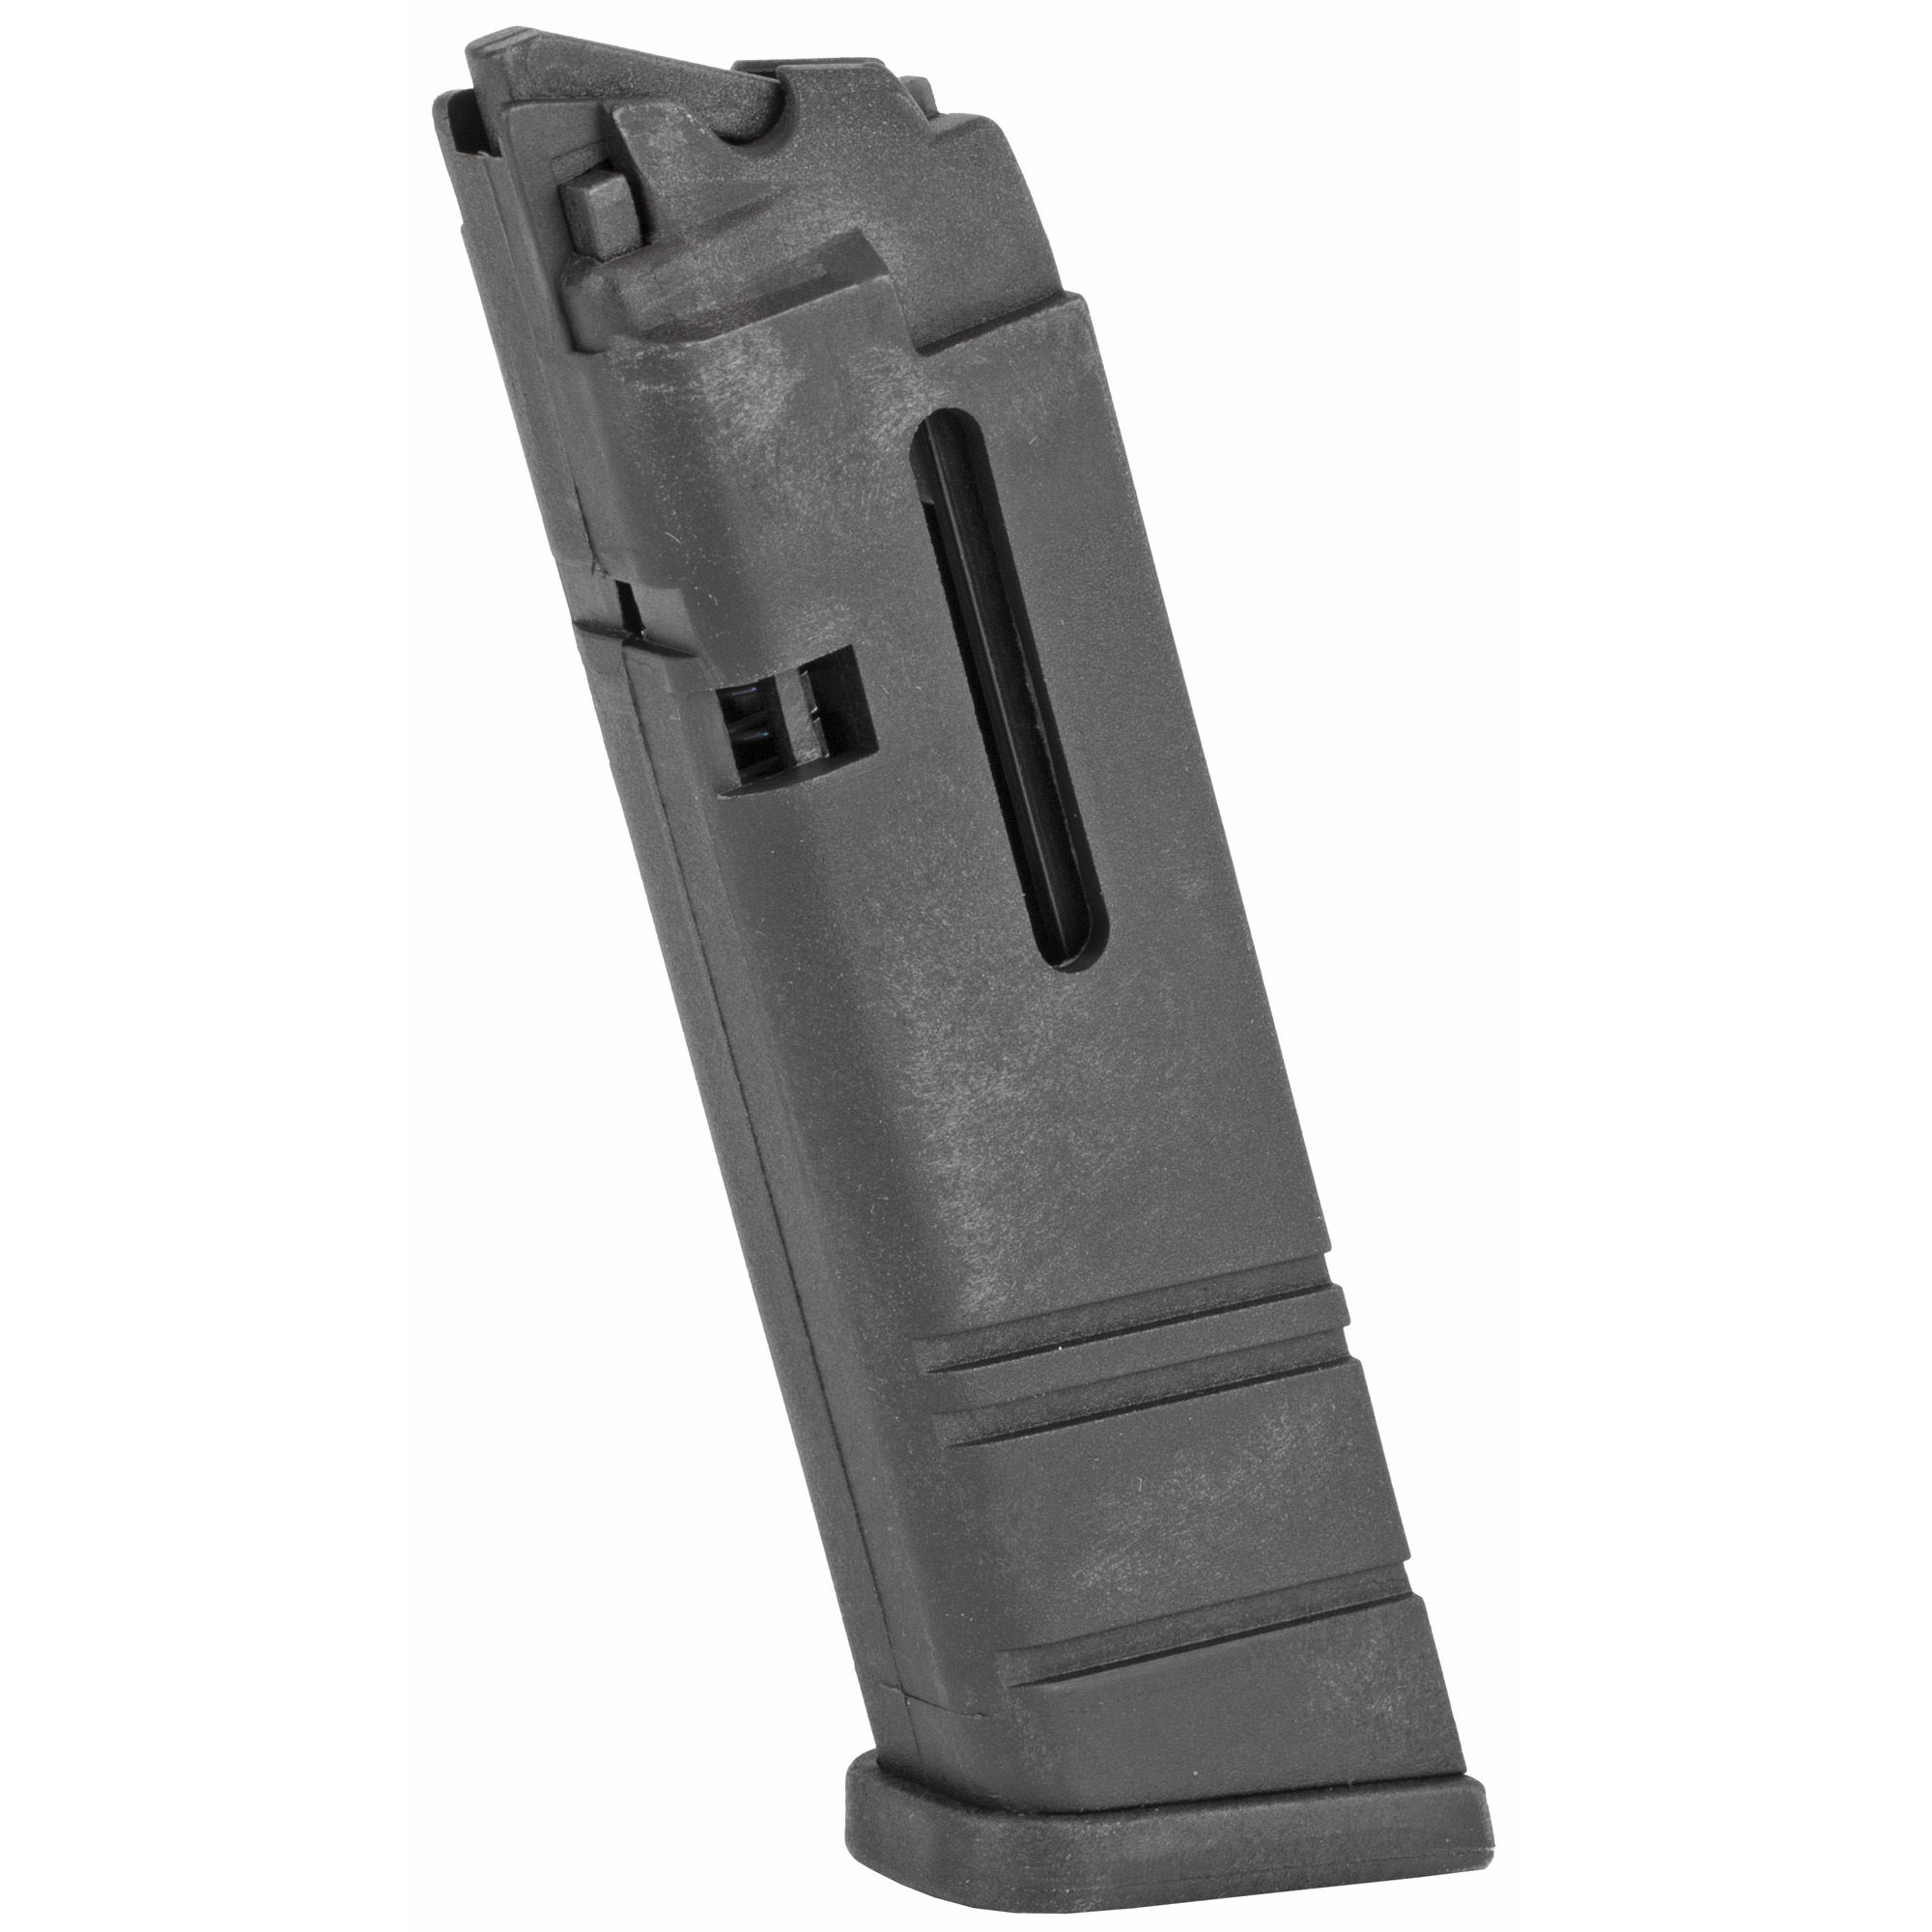 These polymer magazines are for use with the Advantage Arms .22LR pistol conversion kit. (This magazine by itself does NOT convert your gun and may result in damage to gun and injury if used without the conversion kit.)